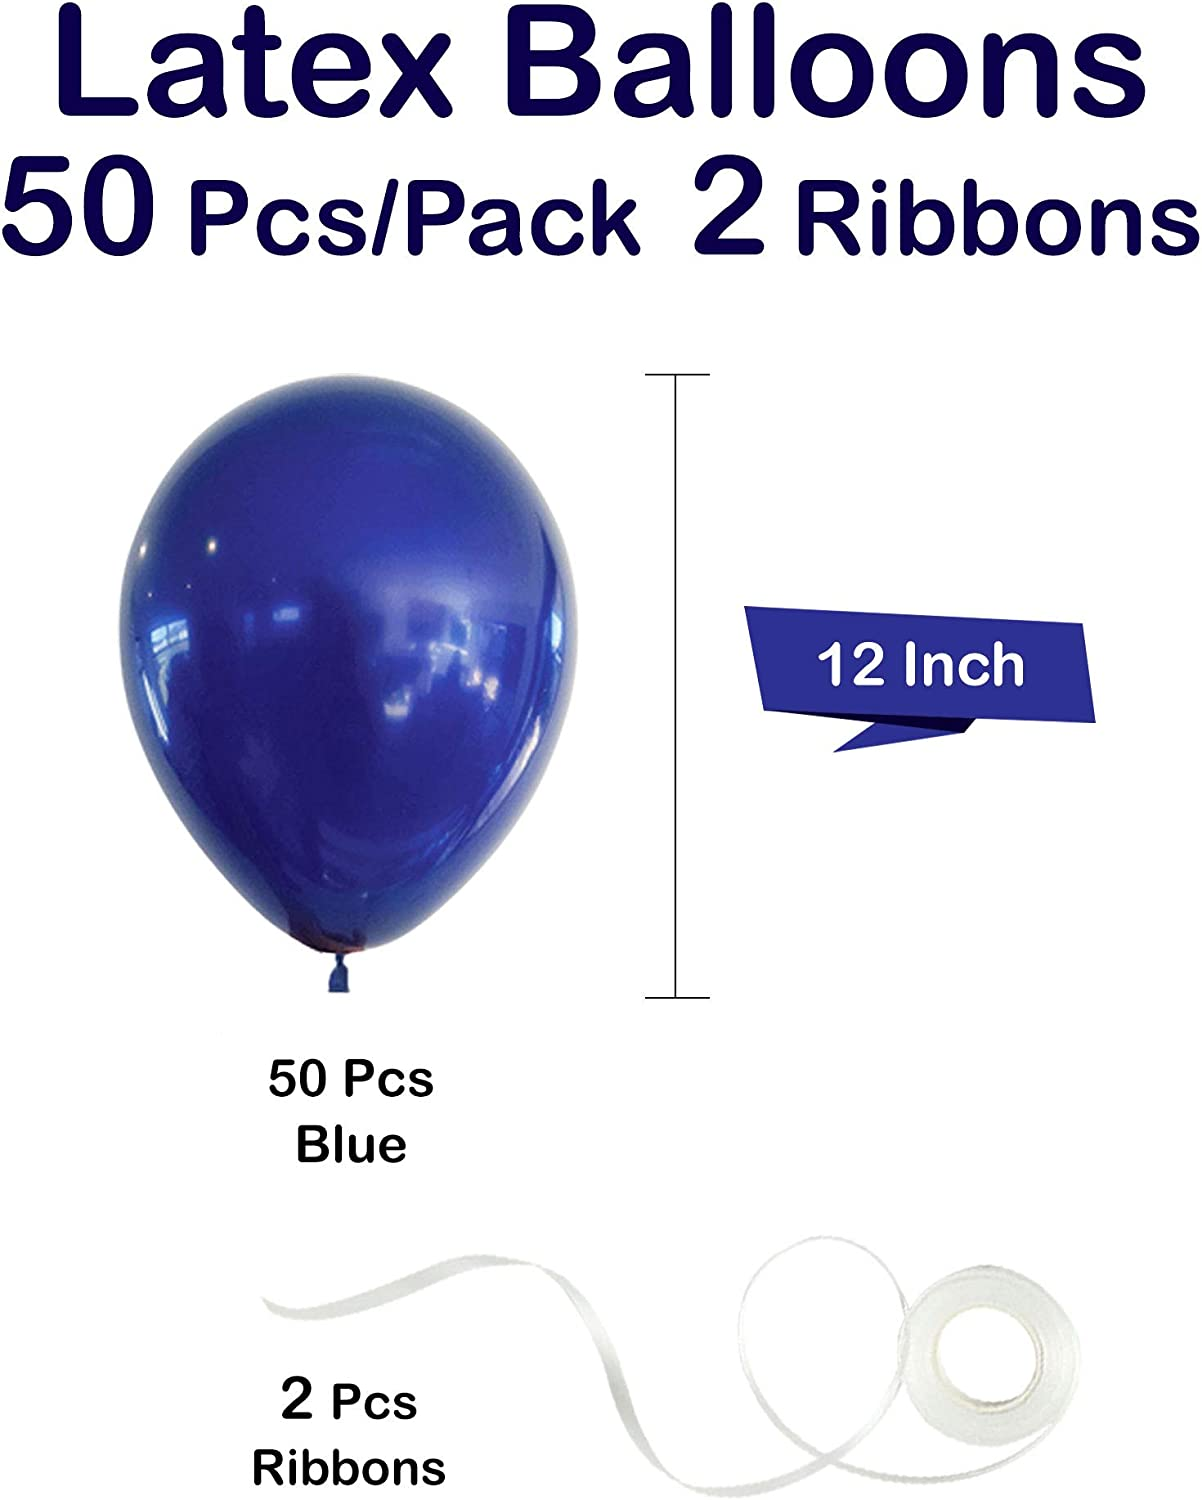 MINCHIC Balloons 50 pcs 12 inch 2 pcs Ribbons include Blue Balloons Party Balloons for Valentine anniversary Shower Wedding Engagement Birthday Graduation Supplies Decorations